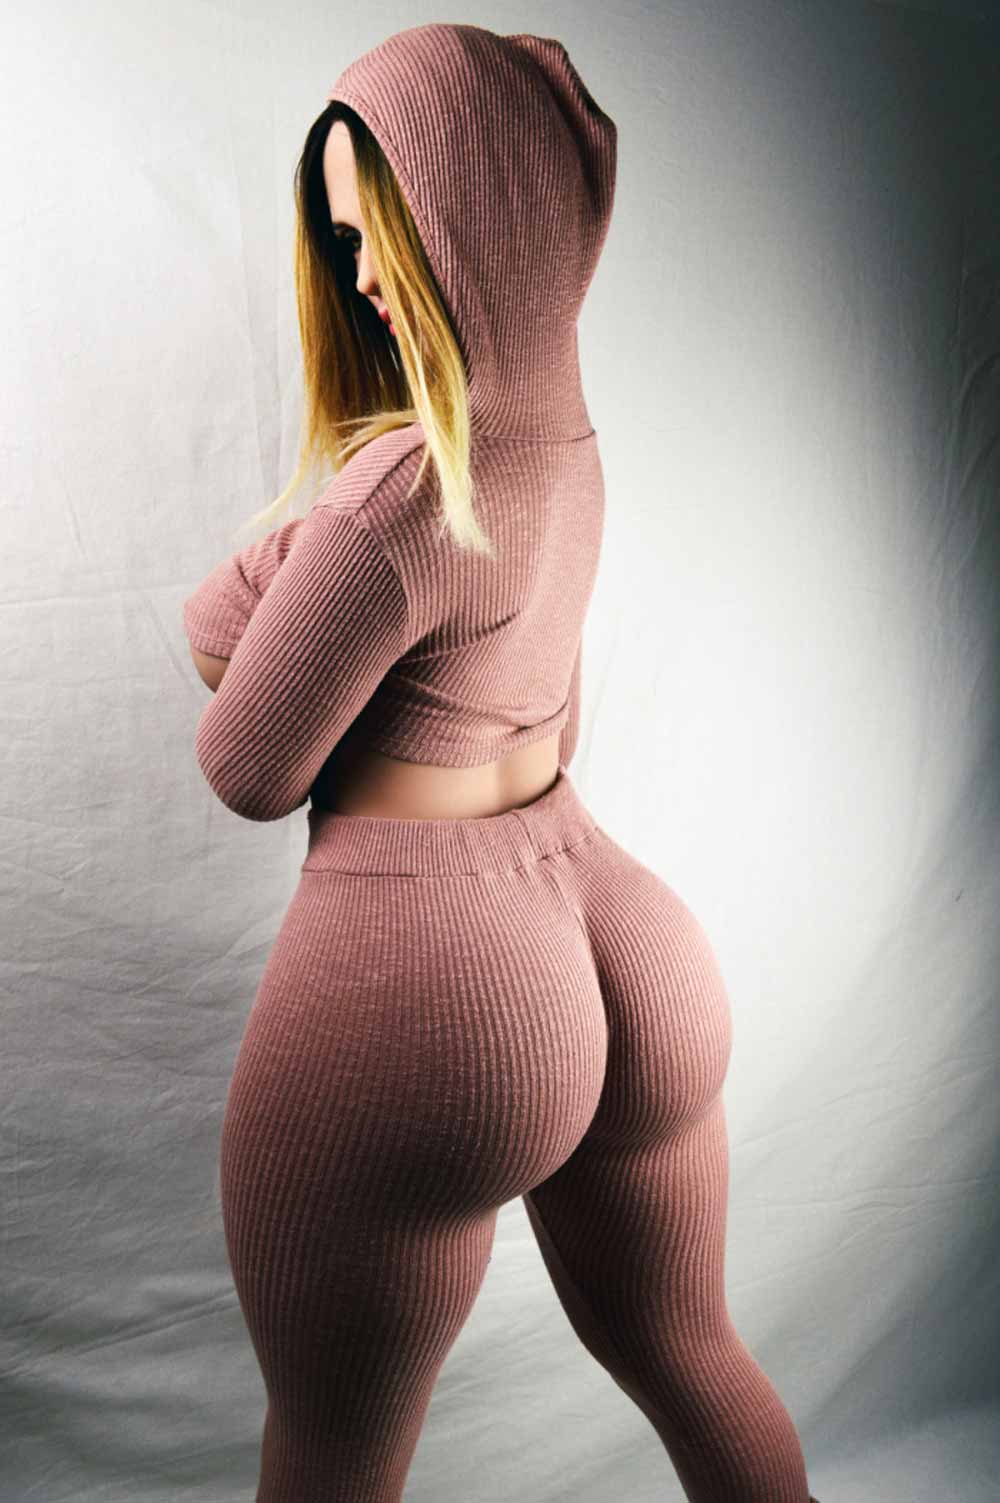 Big tits and big ass sex dolls seeing the back